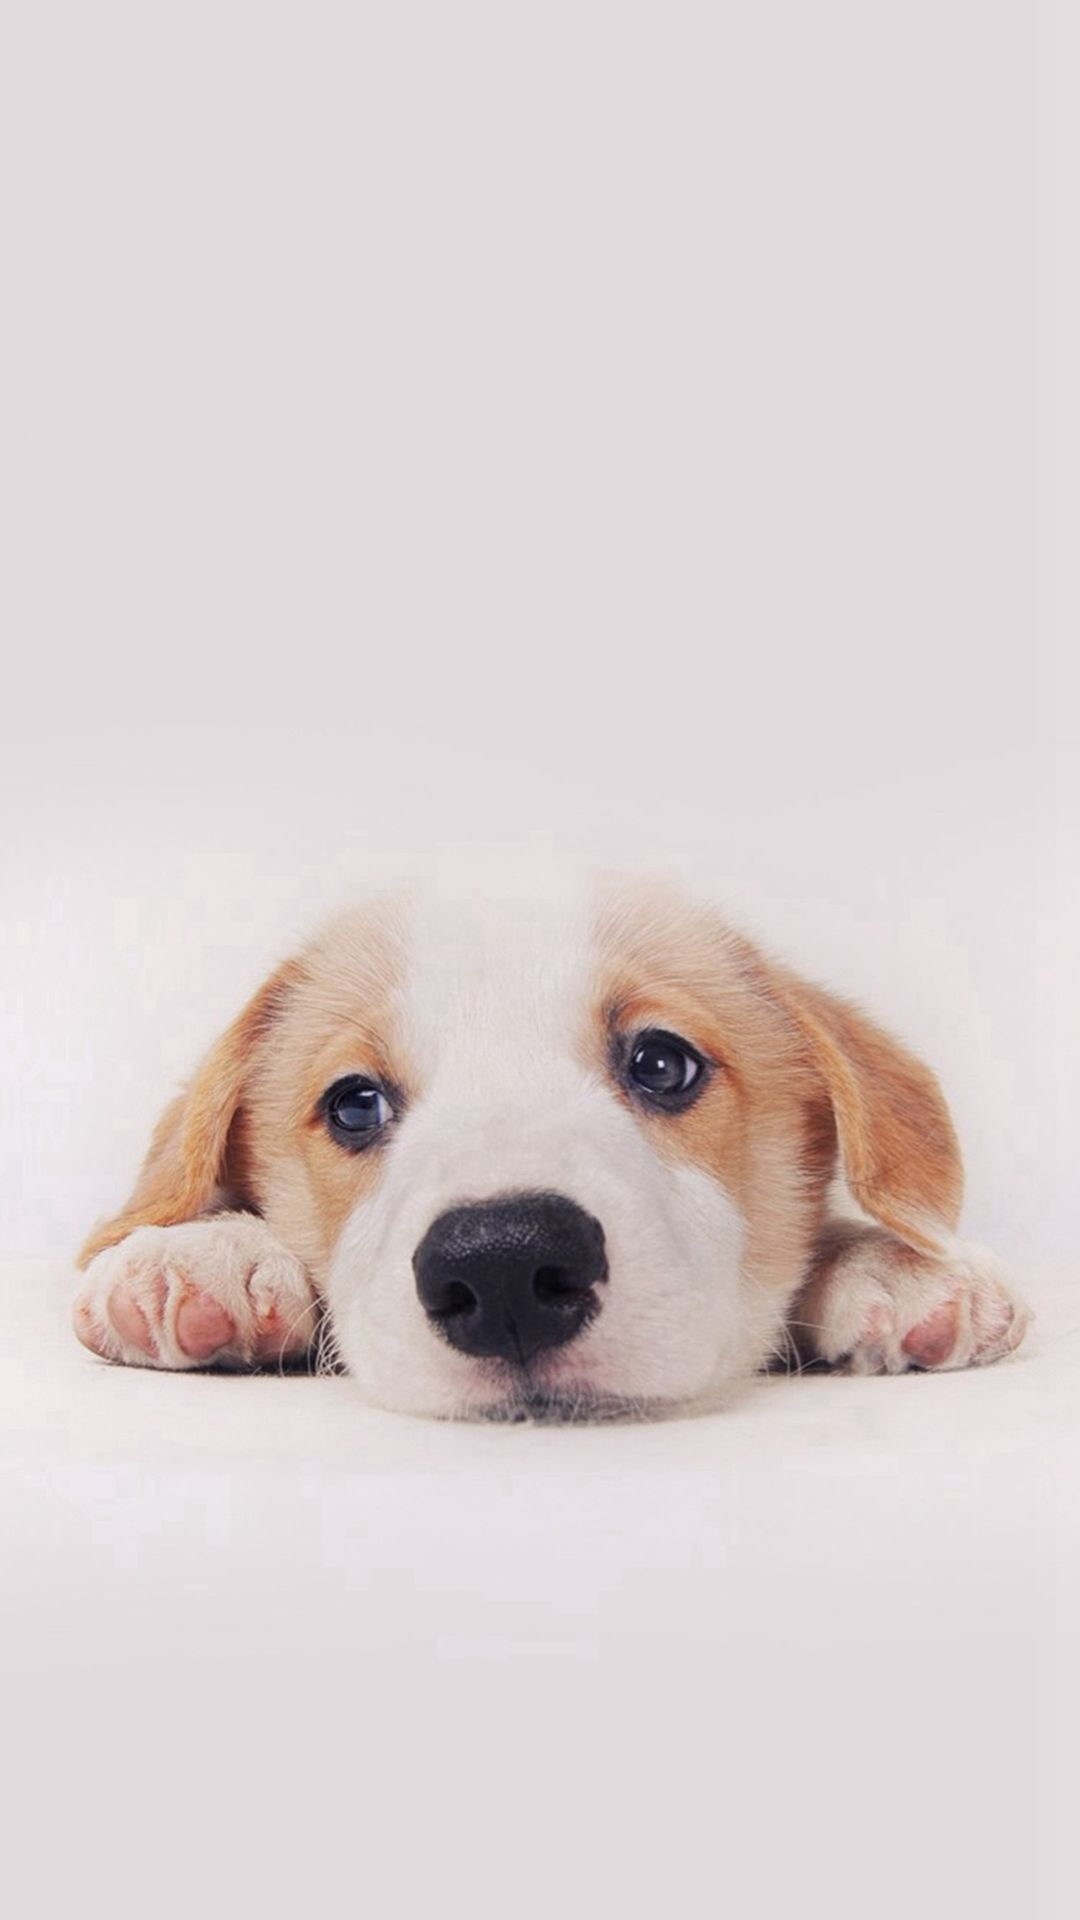 Home Screen Cute Puppies Wallpapers For Mobile